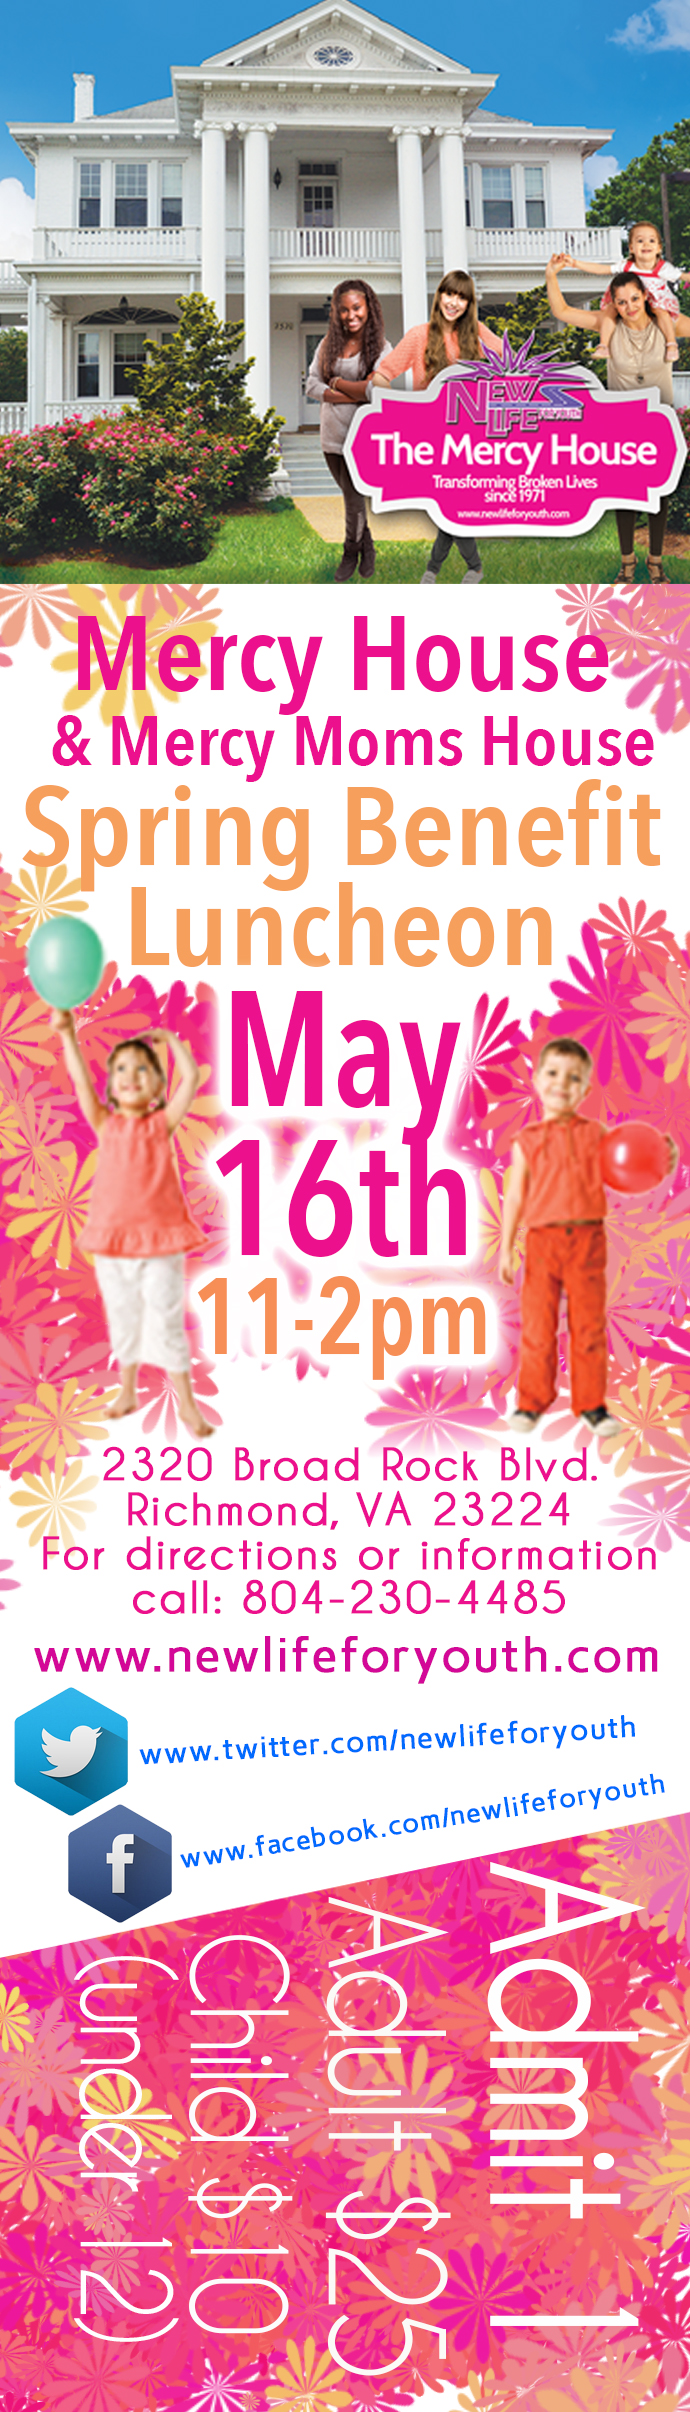 Mercy House and Mercy Moms Spring Benefit Luncheon